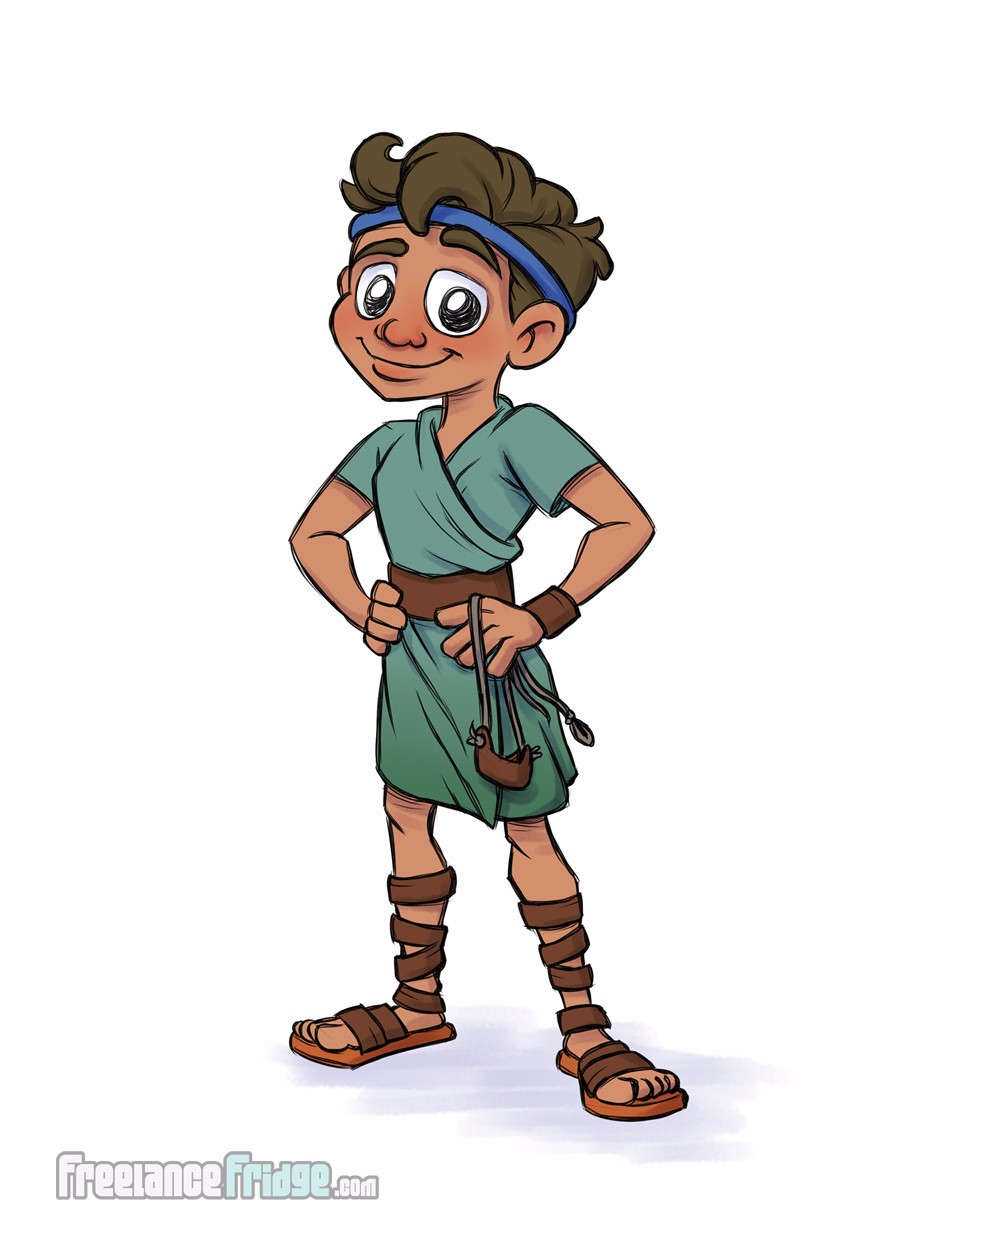 David and Goliath Character Concept Color Final for Kid Literature Children's Book